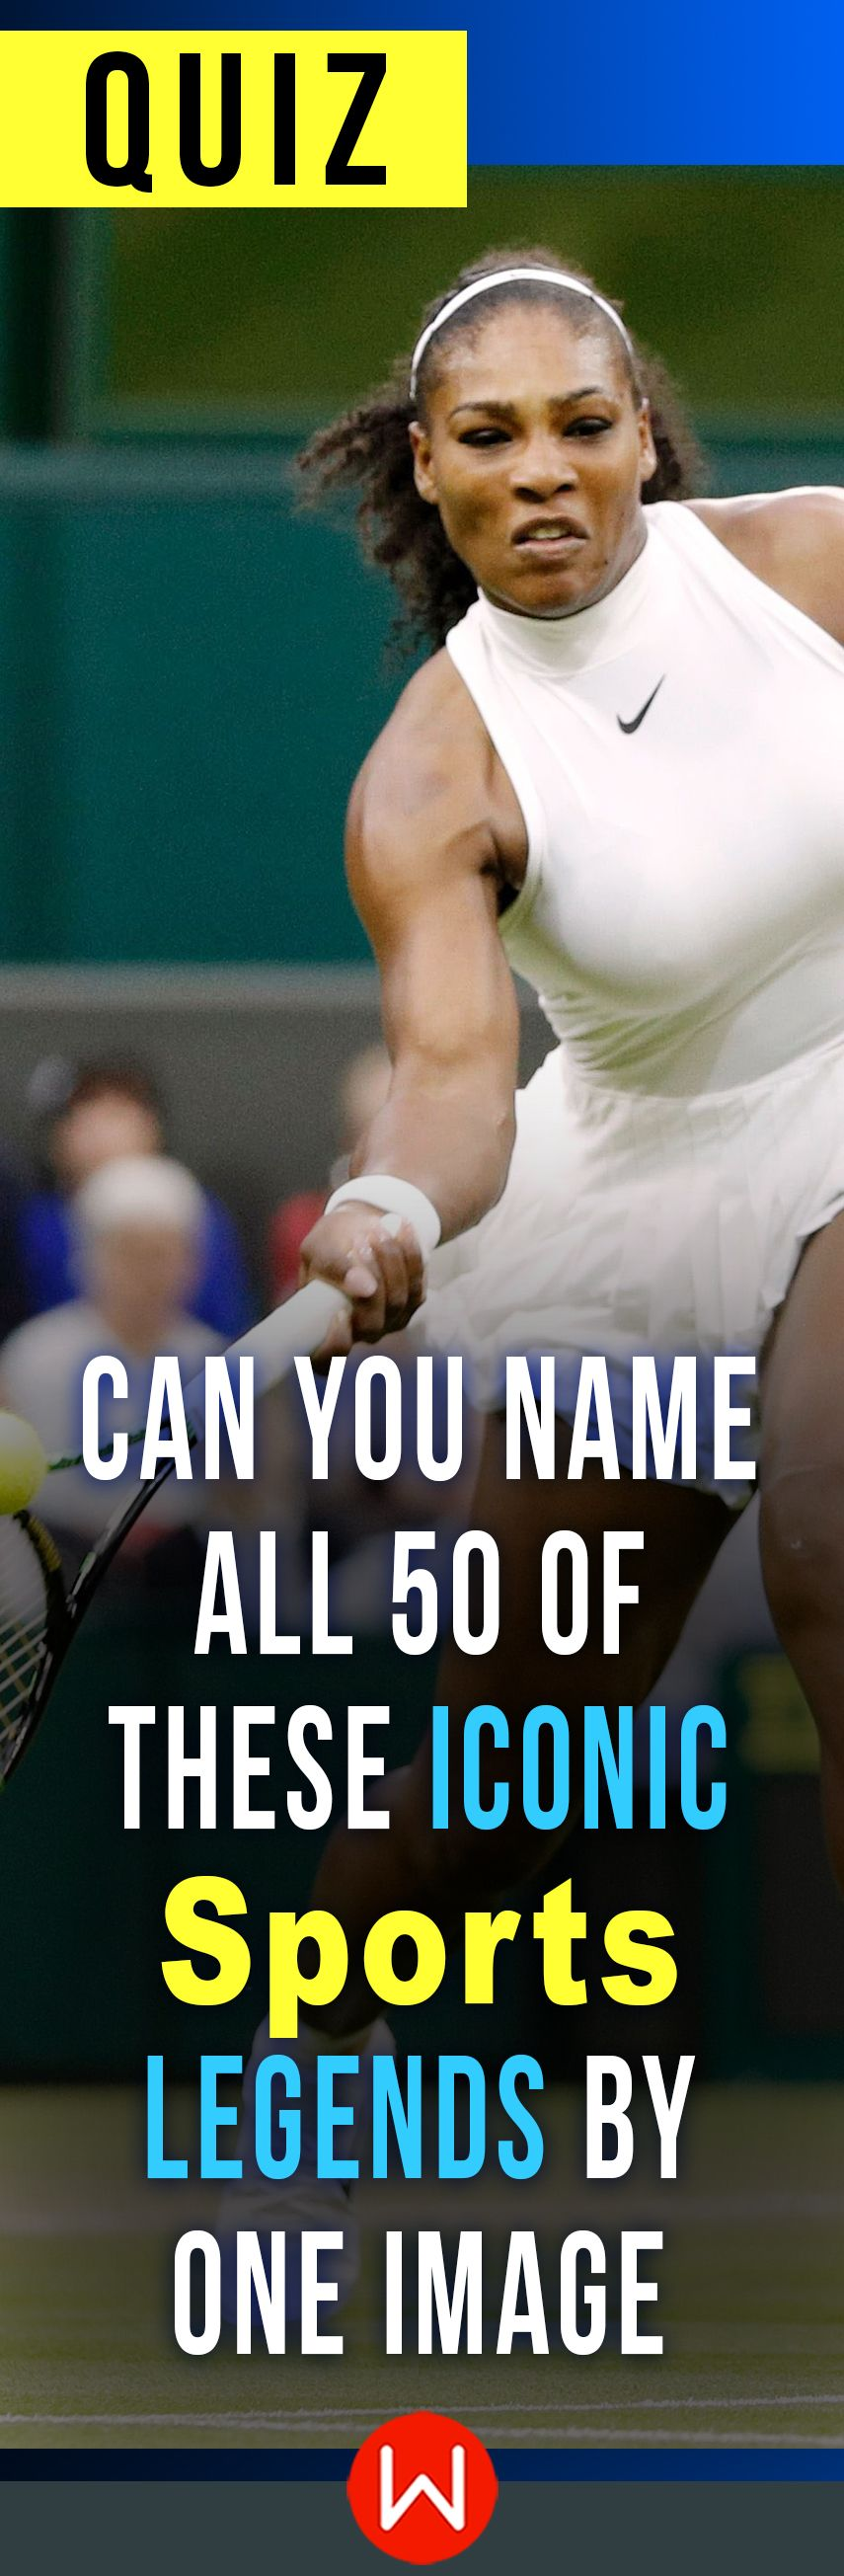 Quiz Can You Name All 50 Of These Iconic Sports Legends